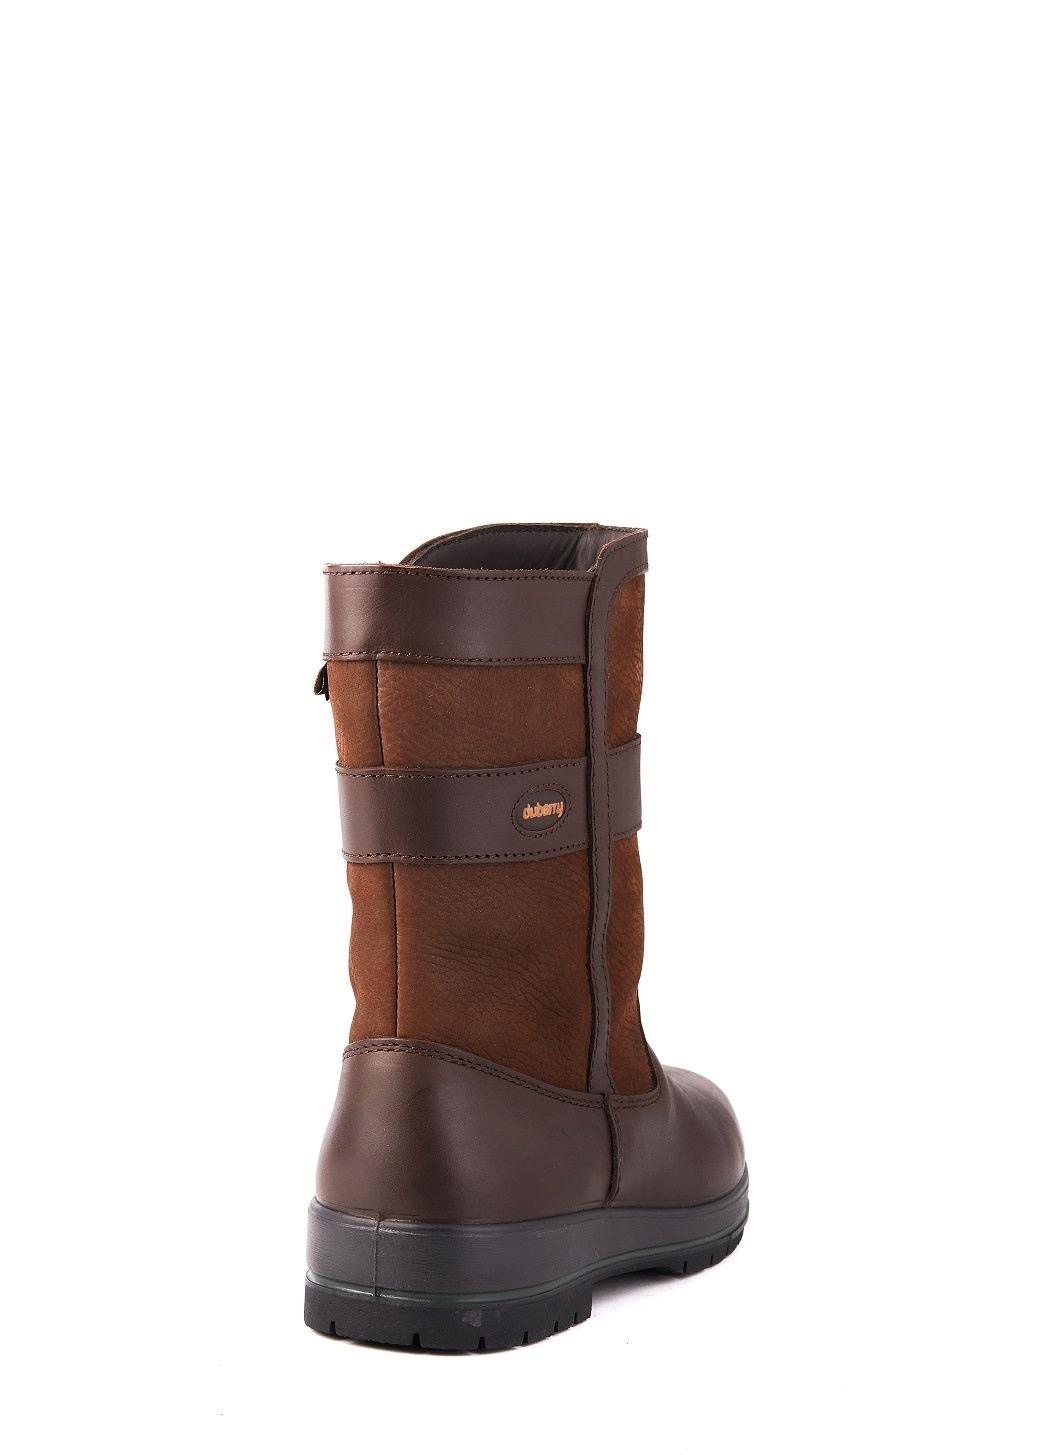 Dubarry Roscommon - Walnut-5